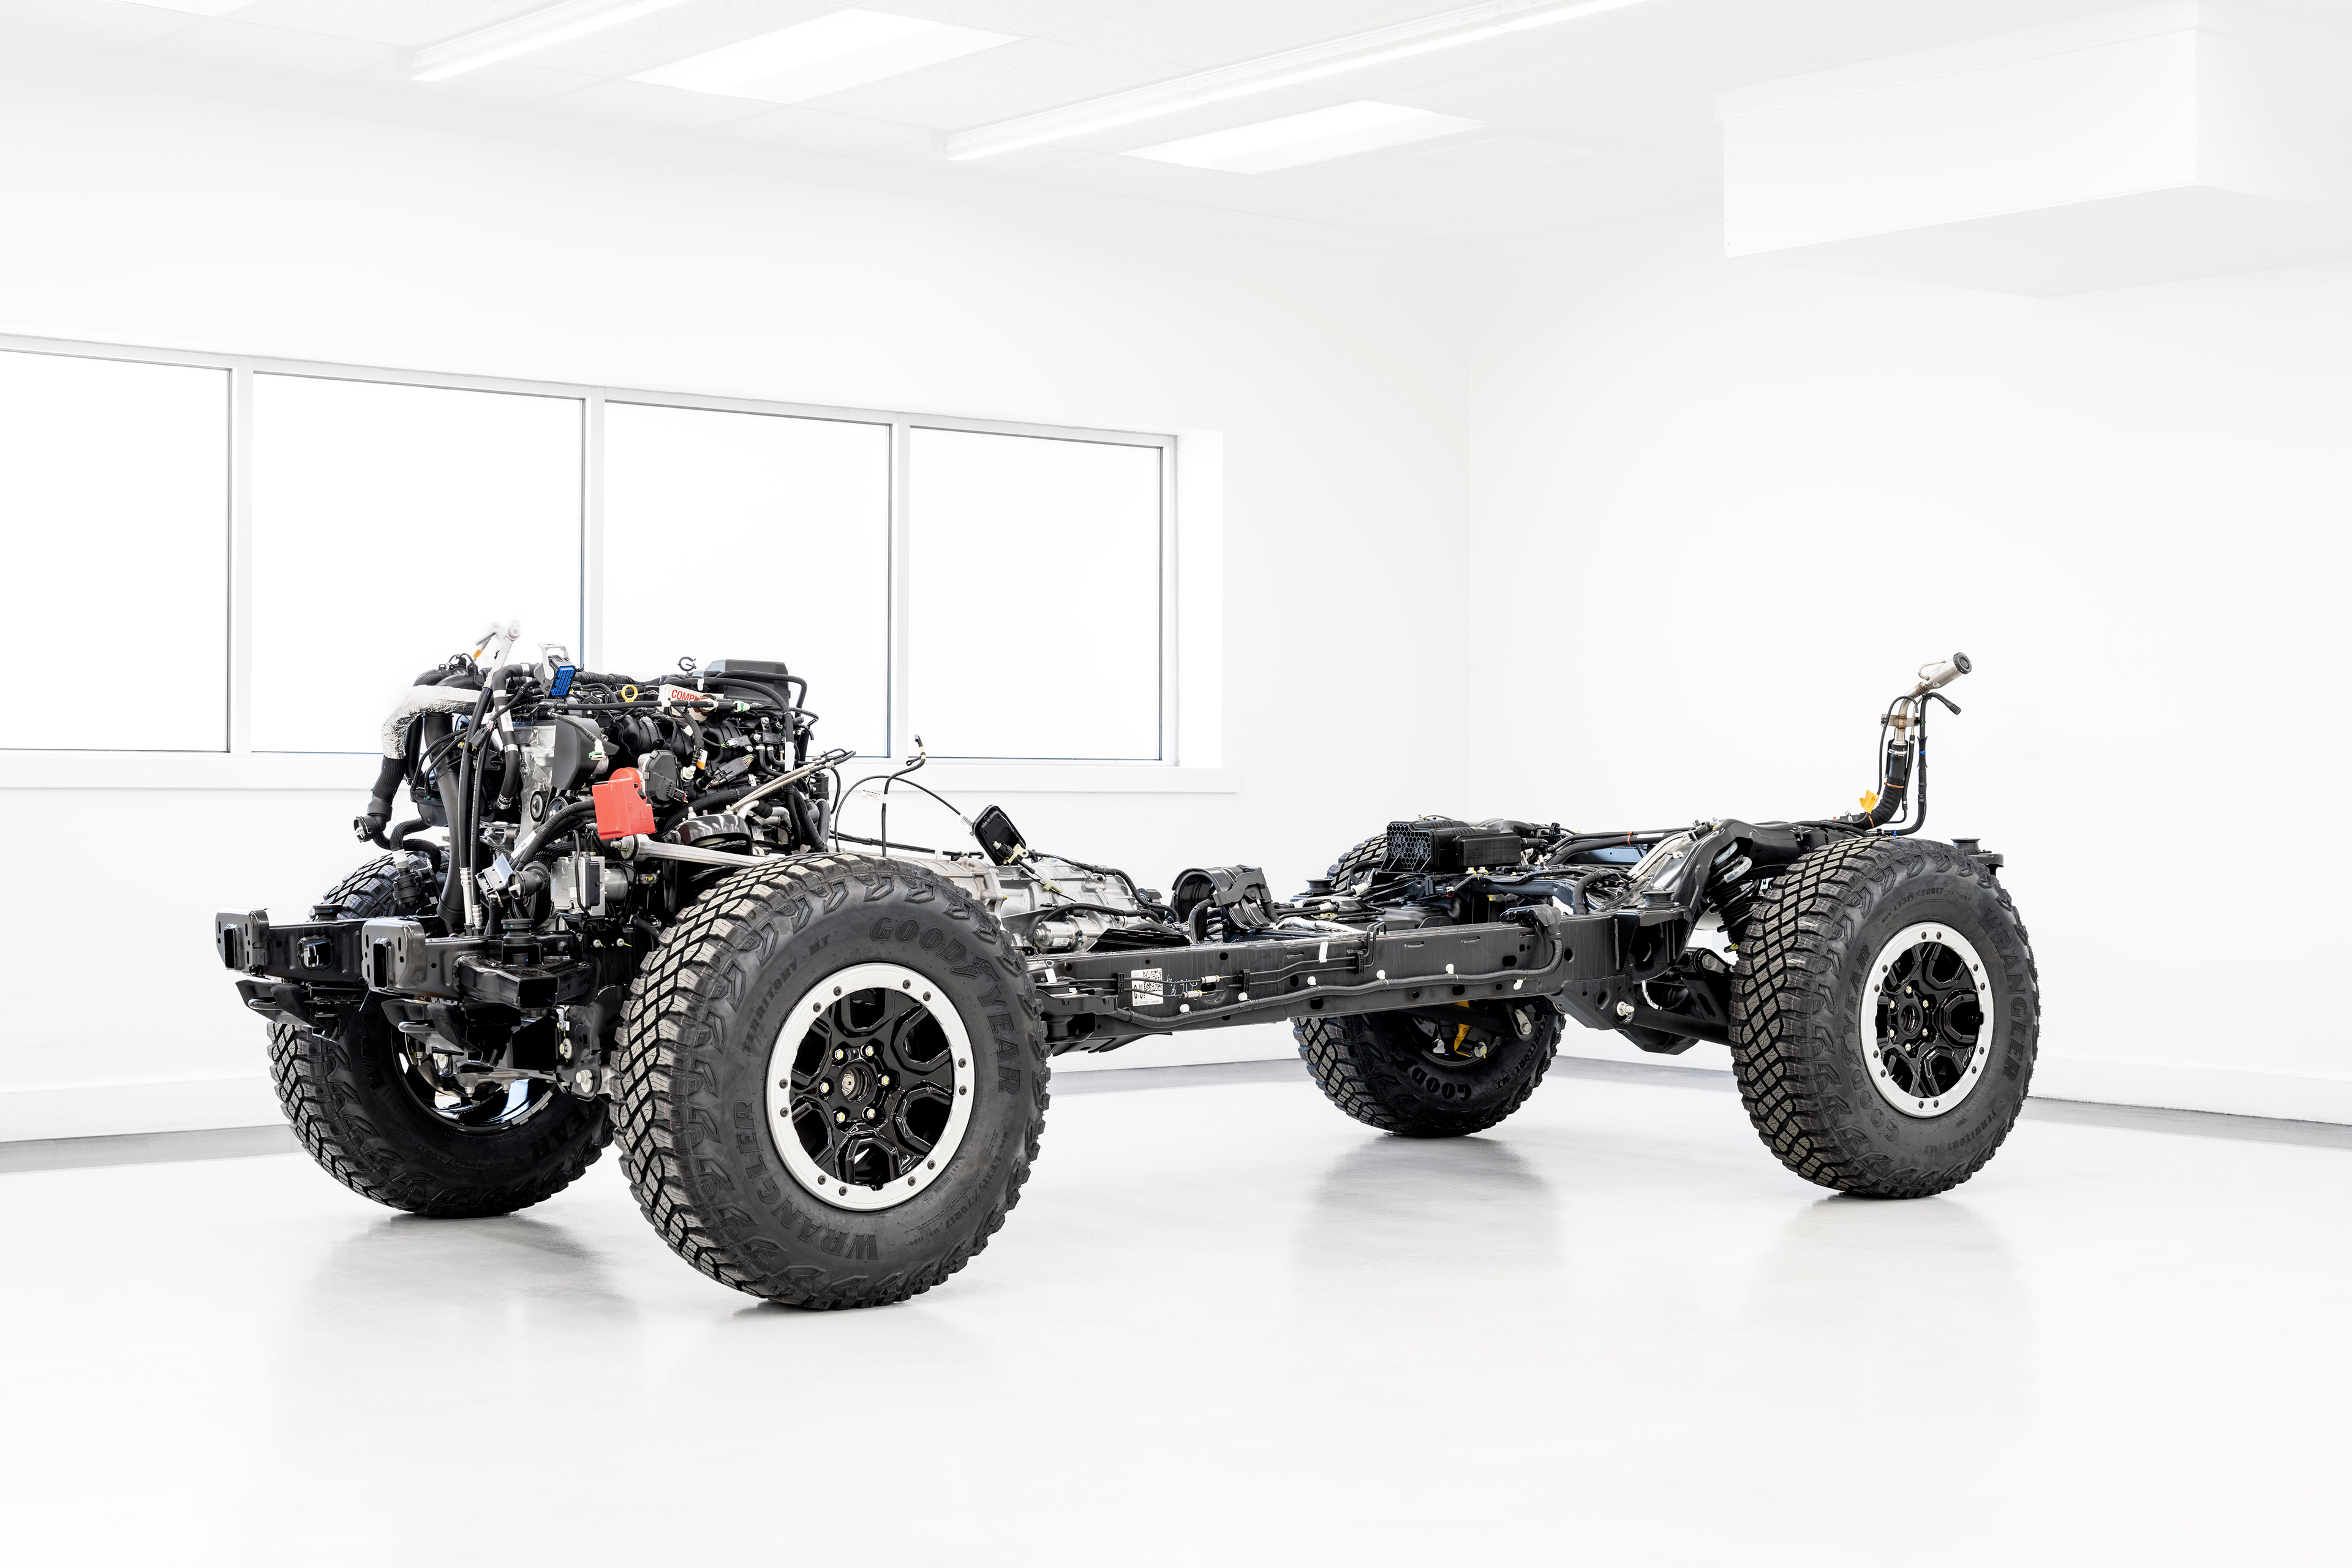 2021 Bronco chassis powertrain - engine / moteur - V6 2.7L EcoBoost - 10-speed automatic transmission - Sasquatch Package suspension - tyres